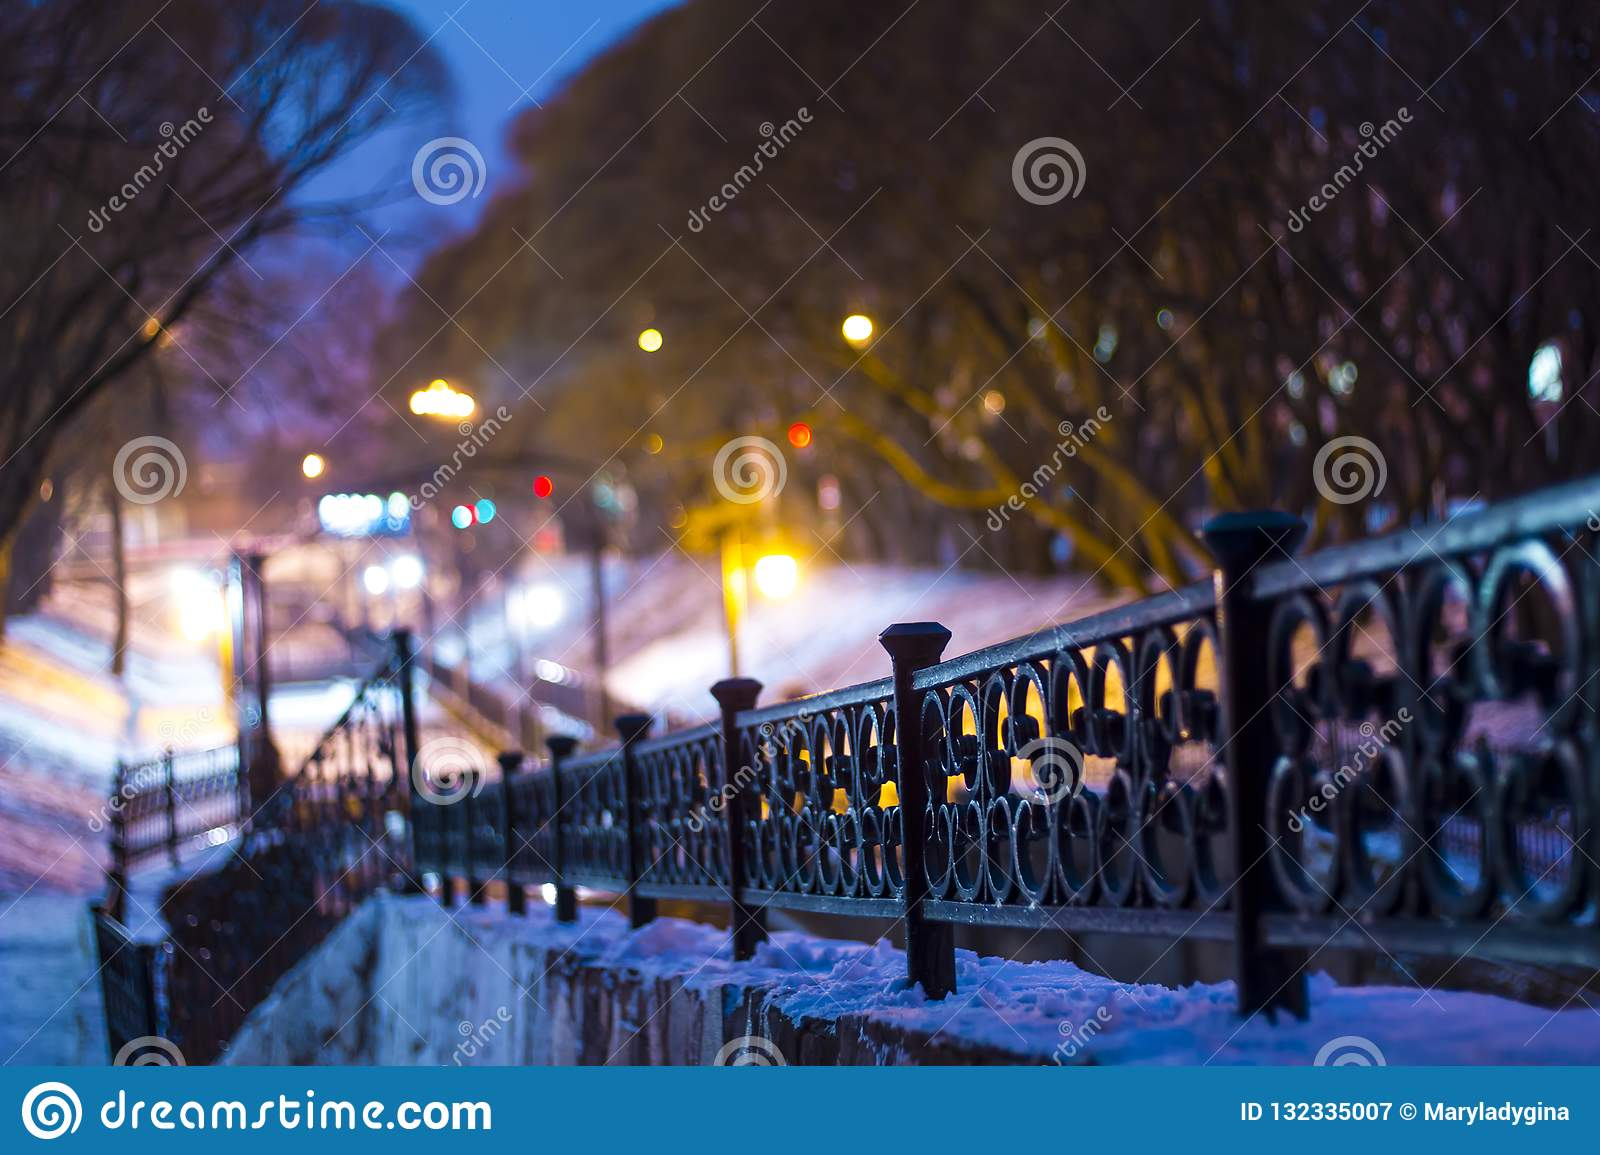 Night winter landscape in the city park. Bridge over the river. Park lights. Willows. Cast iron railings